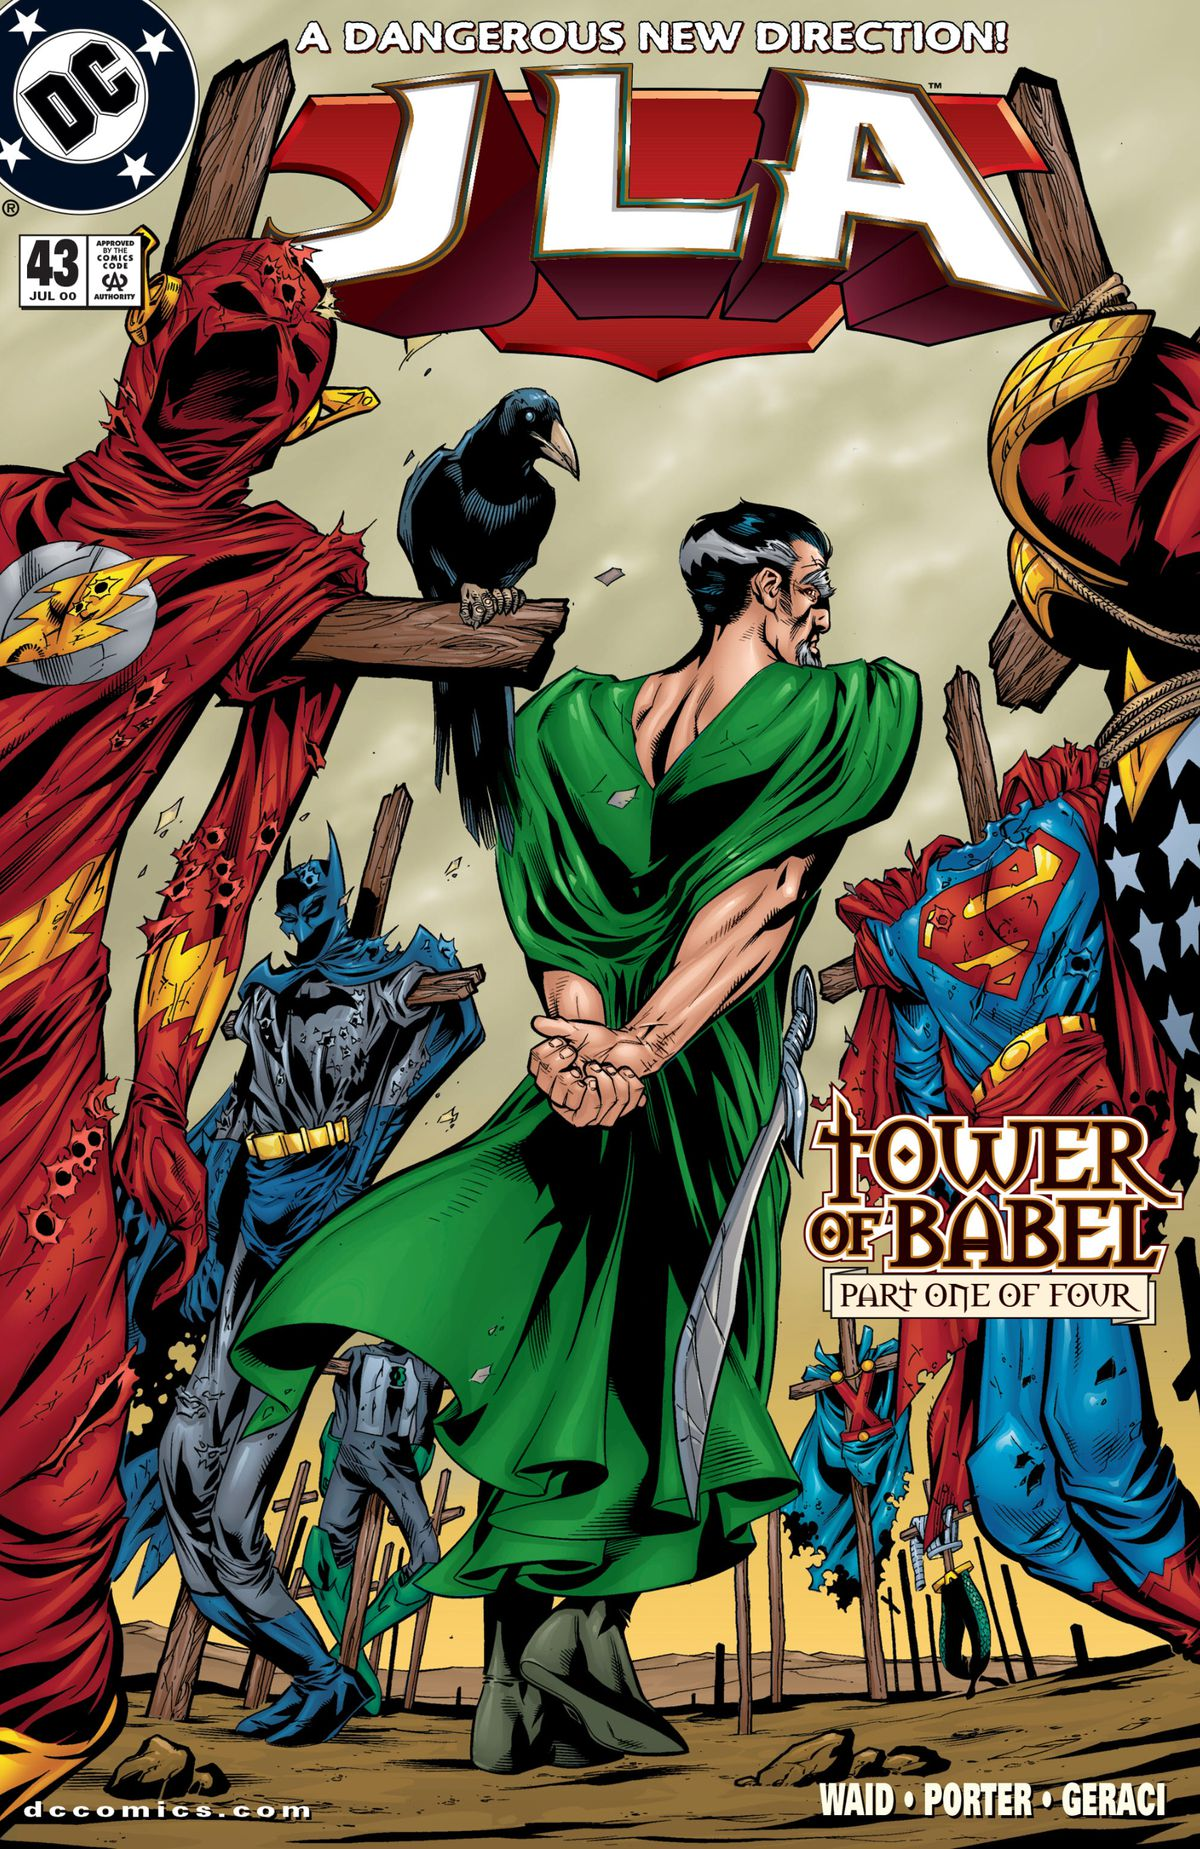 Ra's al Ghul turns his back on a field of crosses hung with the tattered costumes of the Justice League on the cover of JLA #43, DC Comics (2000).